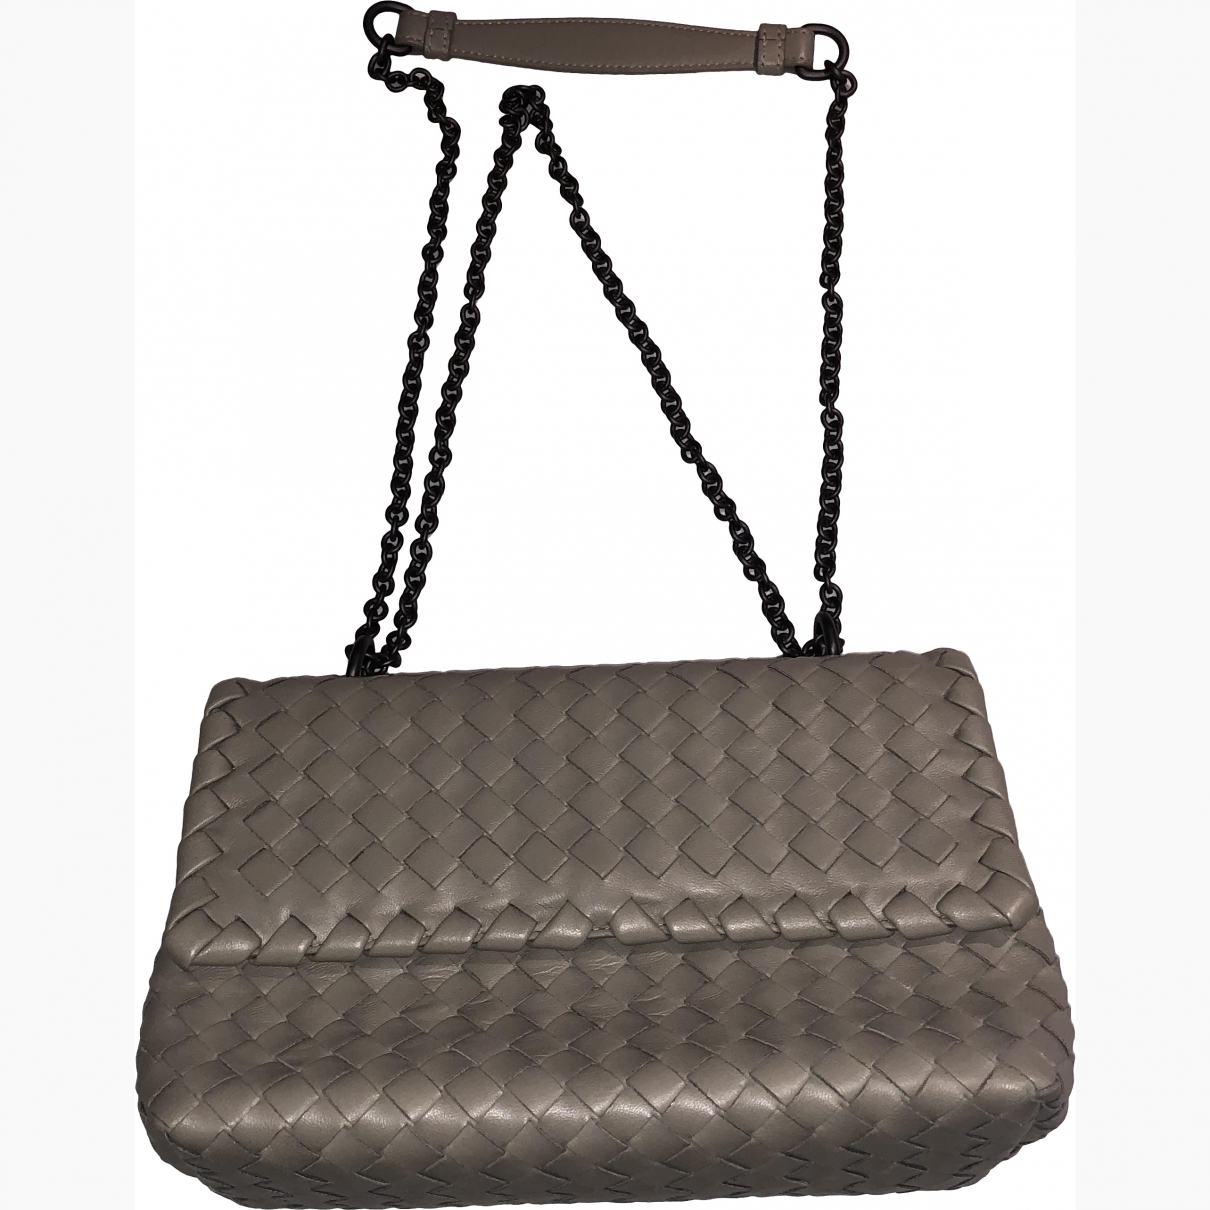 Bottega Veneta Olimpia Leather handbag for Women \N